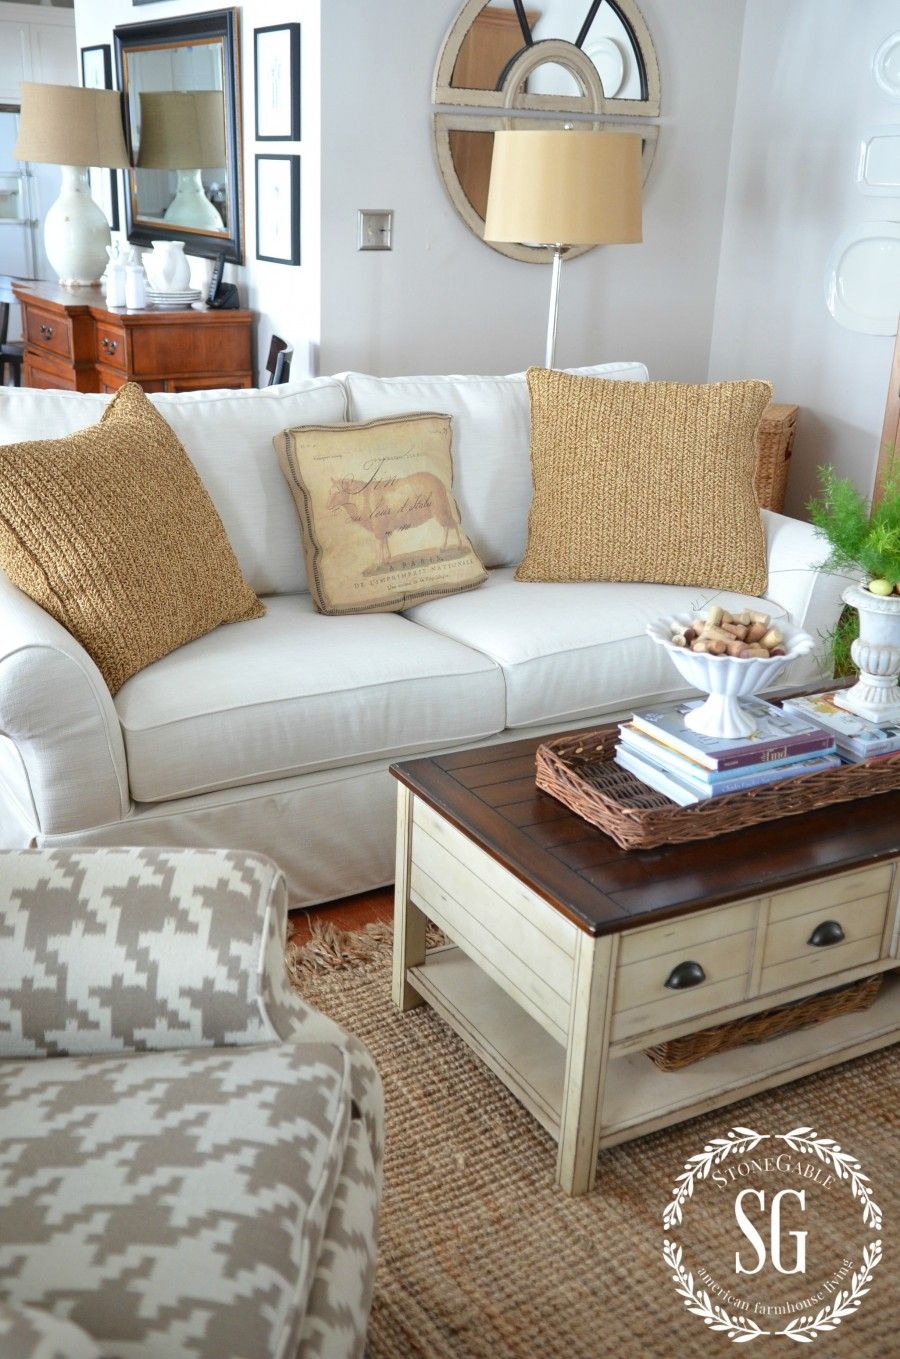 6 Must Know Tips For Buying A Sofa And New Family Room